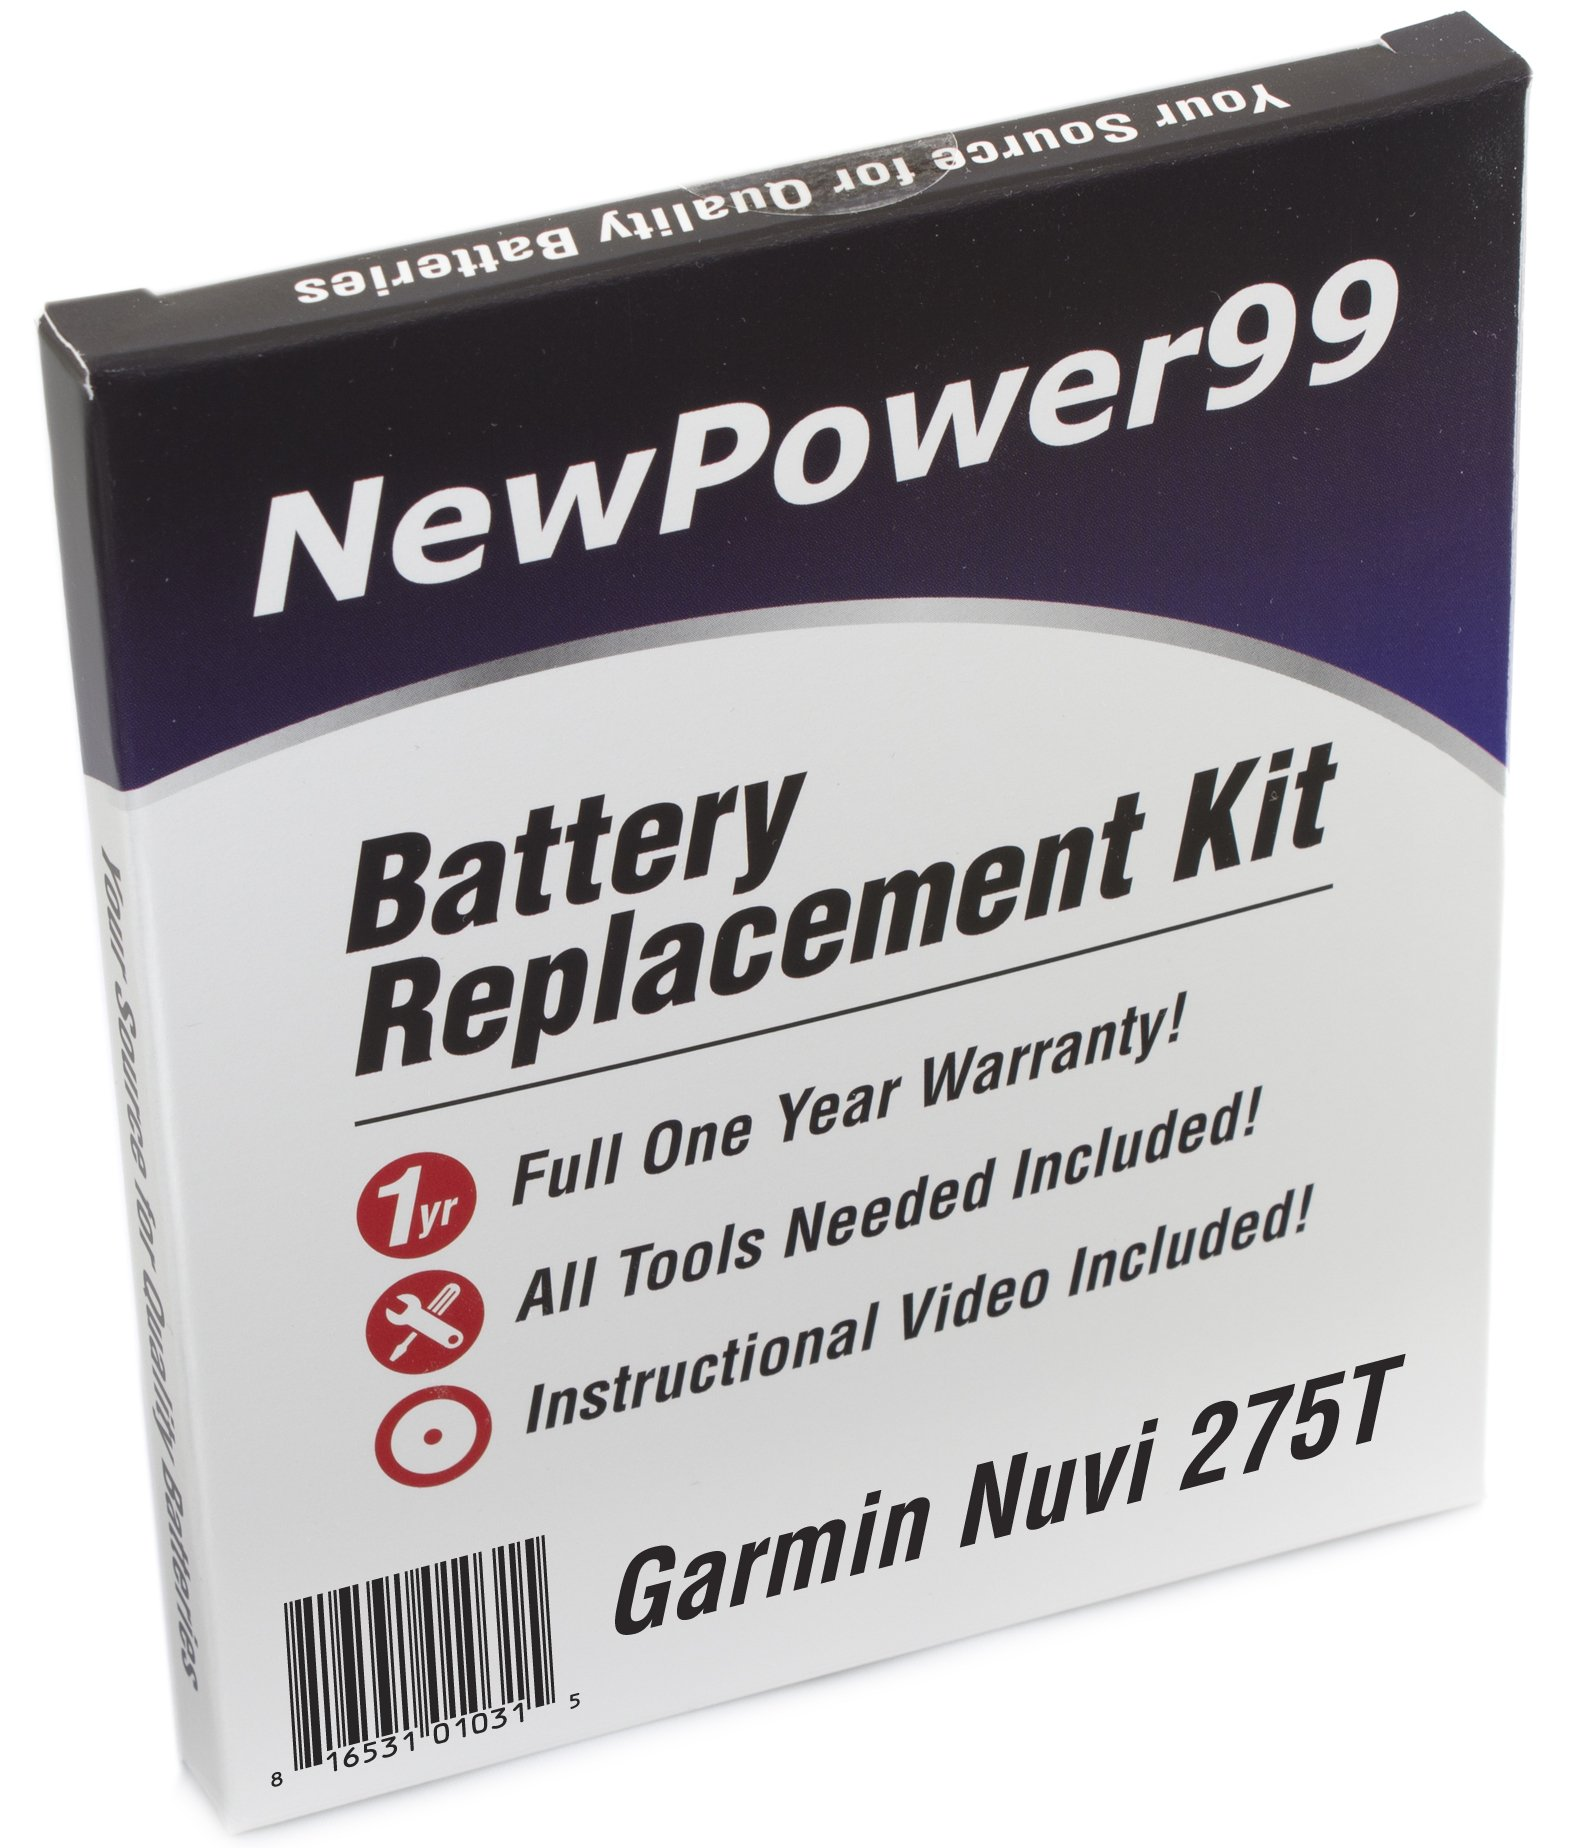 Battery Replacement Kit for Garmin Nuvi 275T with Installation Video, Tools, and Extended Life Battery.